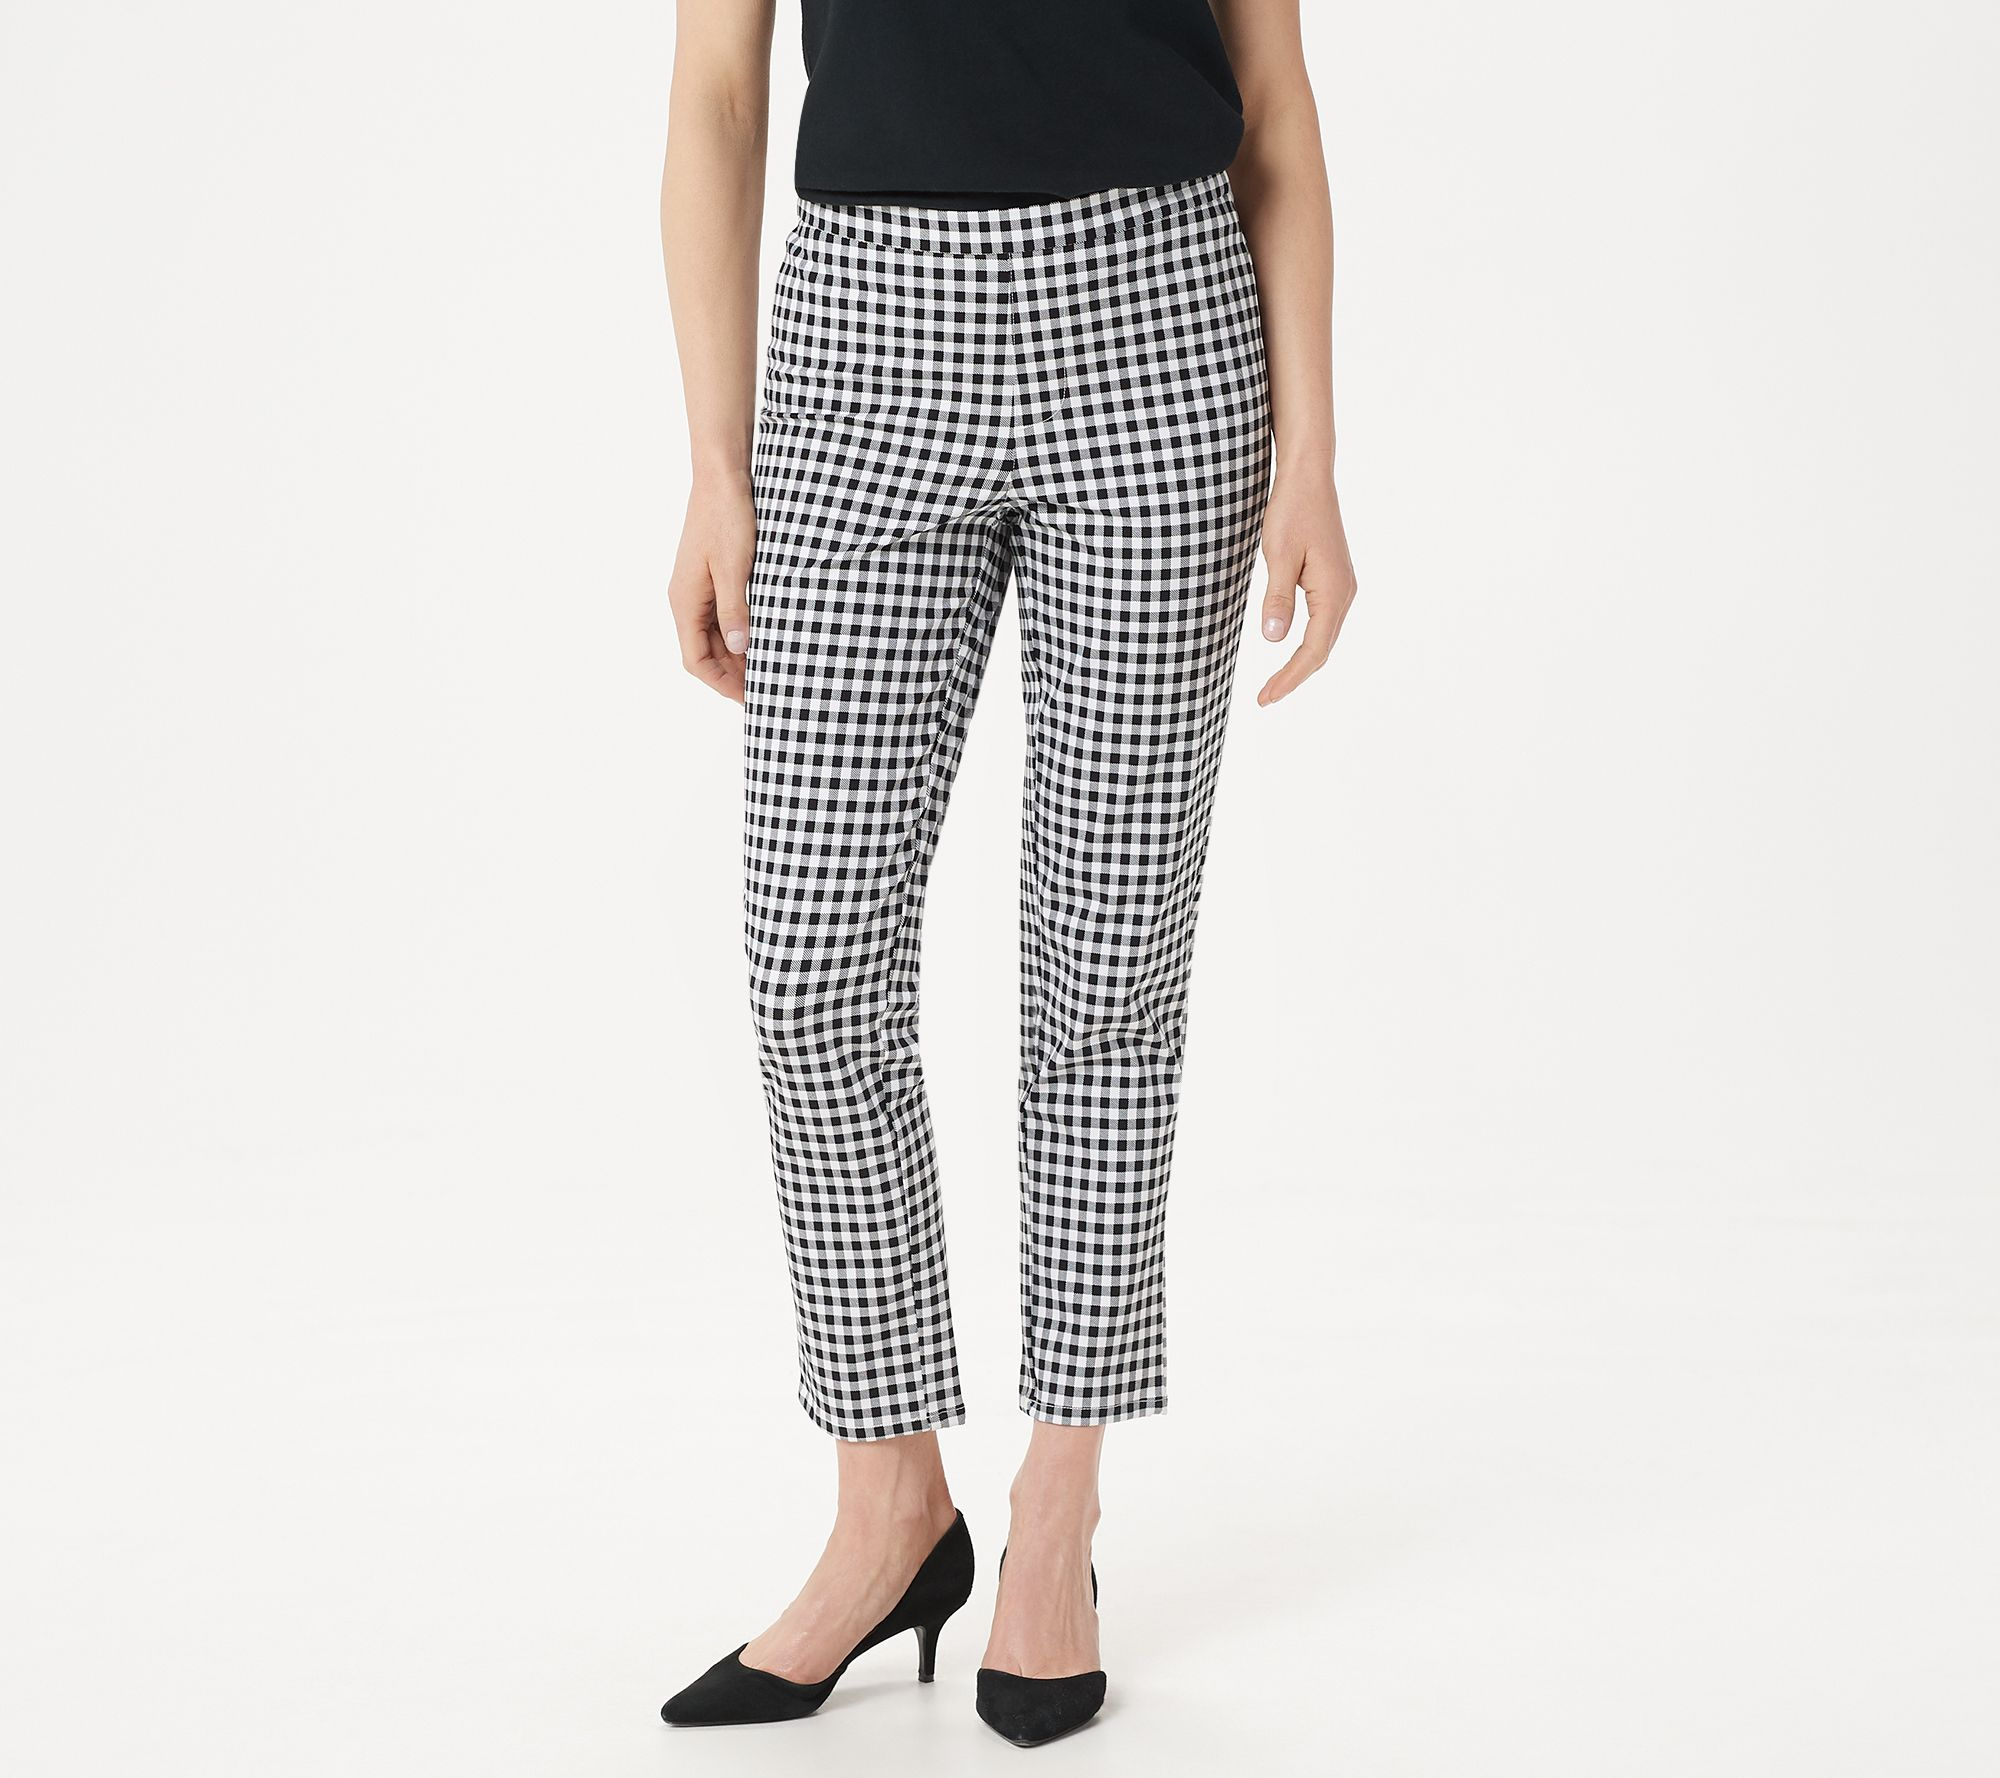 Isaac Mizrahi Petite 24//7 Stretch Ankle Pants Bright White 14P NEW A302697